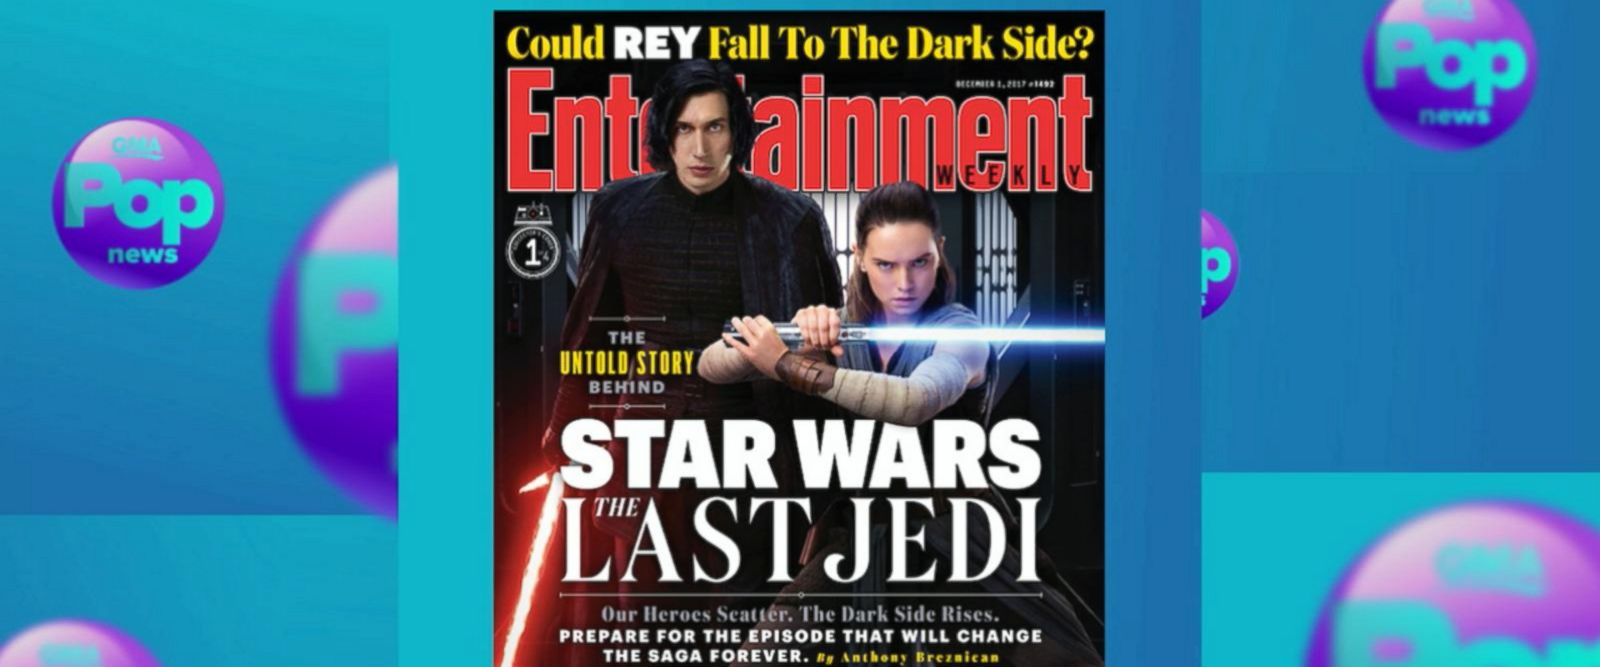 VIDEO: Entertainment Weekly features four collector covers of 'The Last Jedi' on its magazines